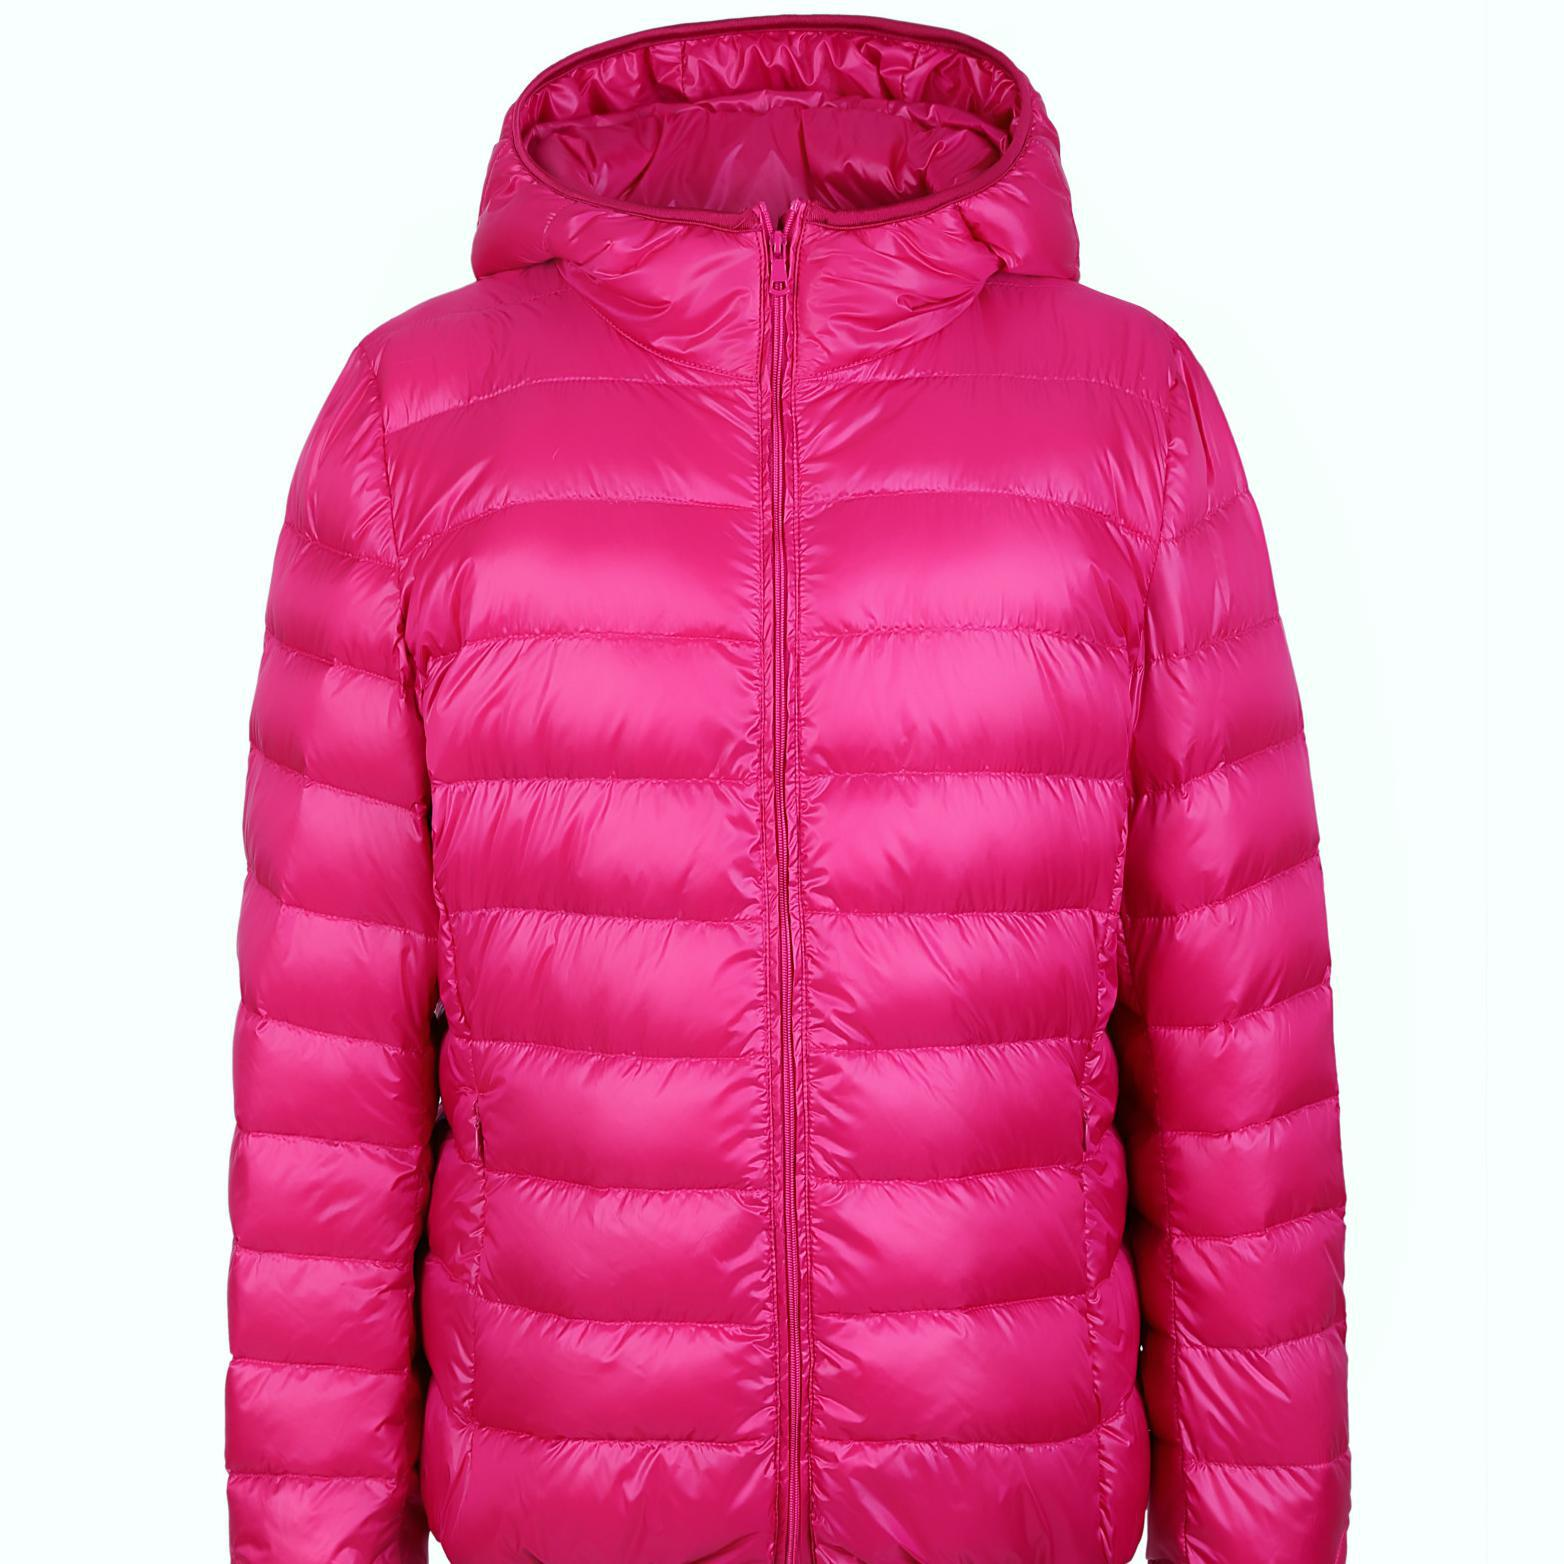 Womens Down Jacket Winter Down Jackets T-insided06 Female About Everything Feathers For  ...